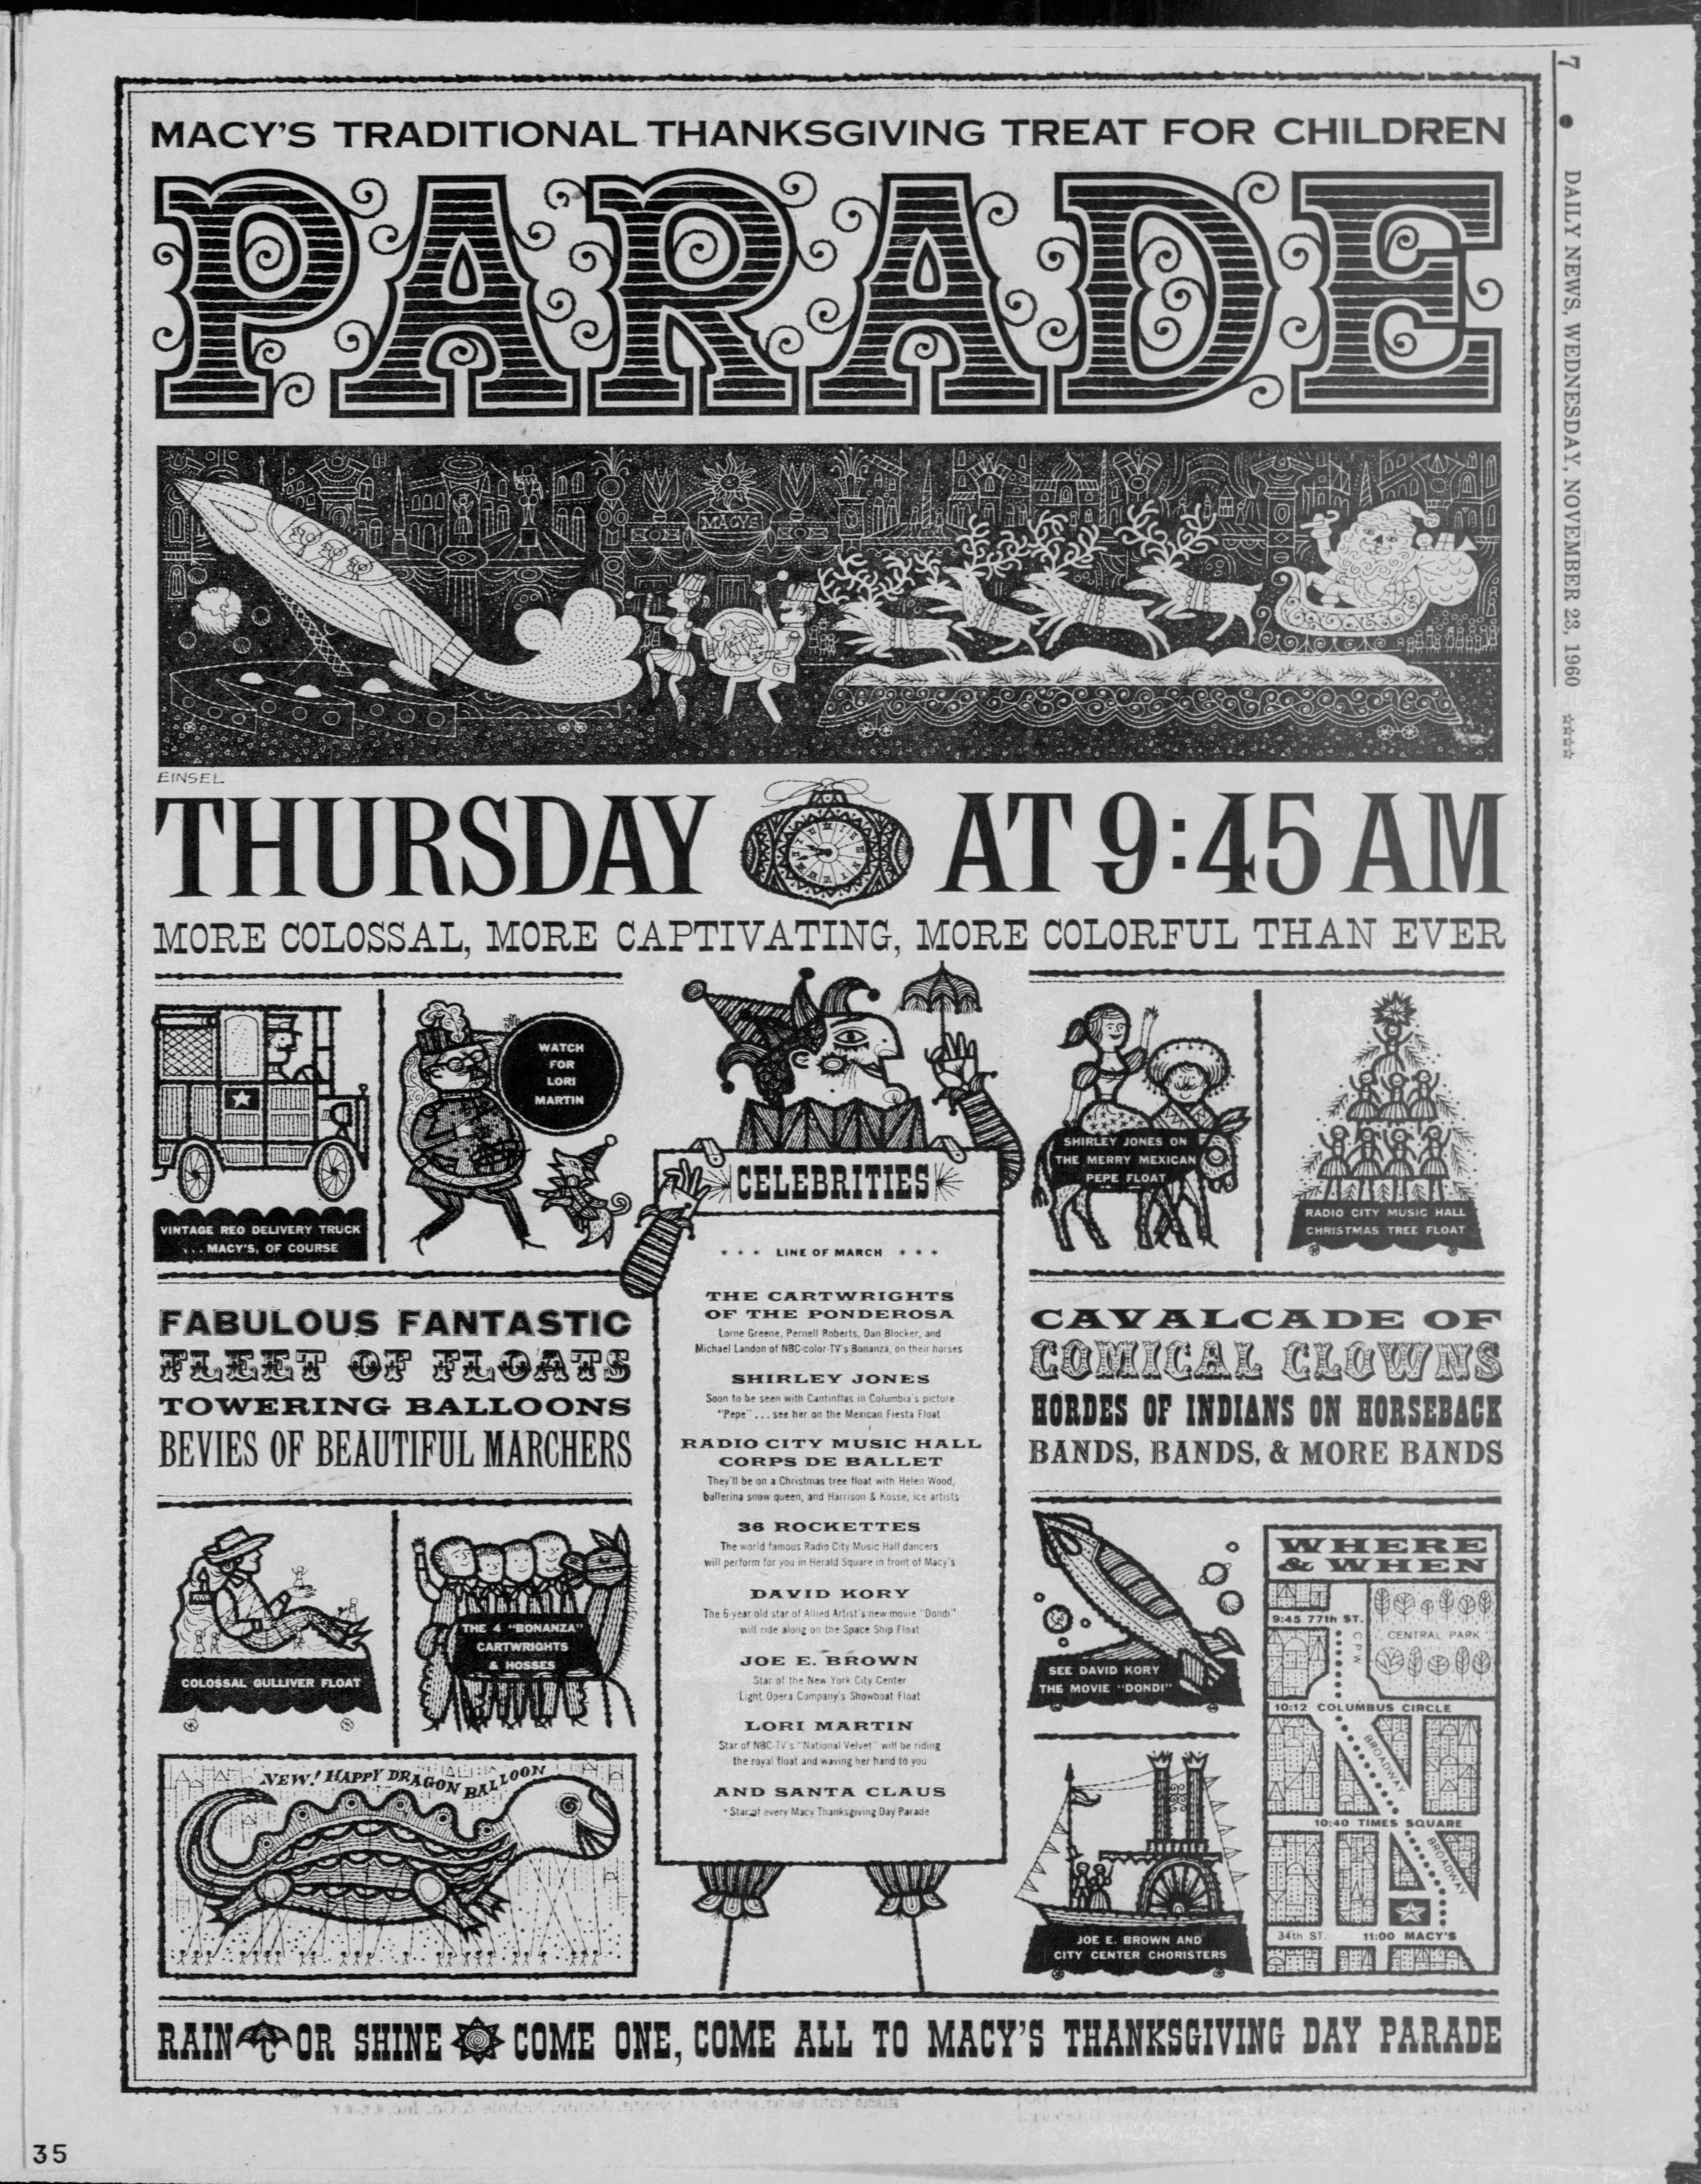 The 34th Annual Macy's Thanksgiving Day Parade